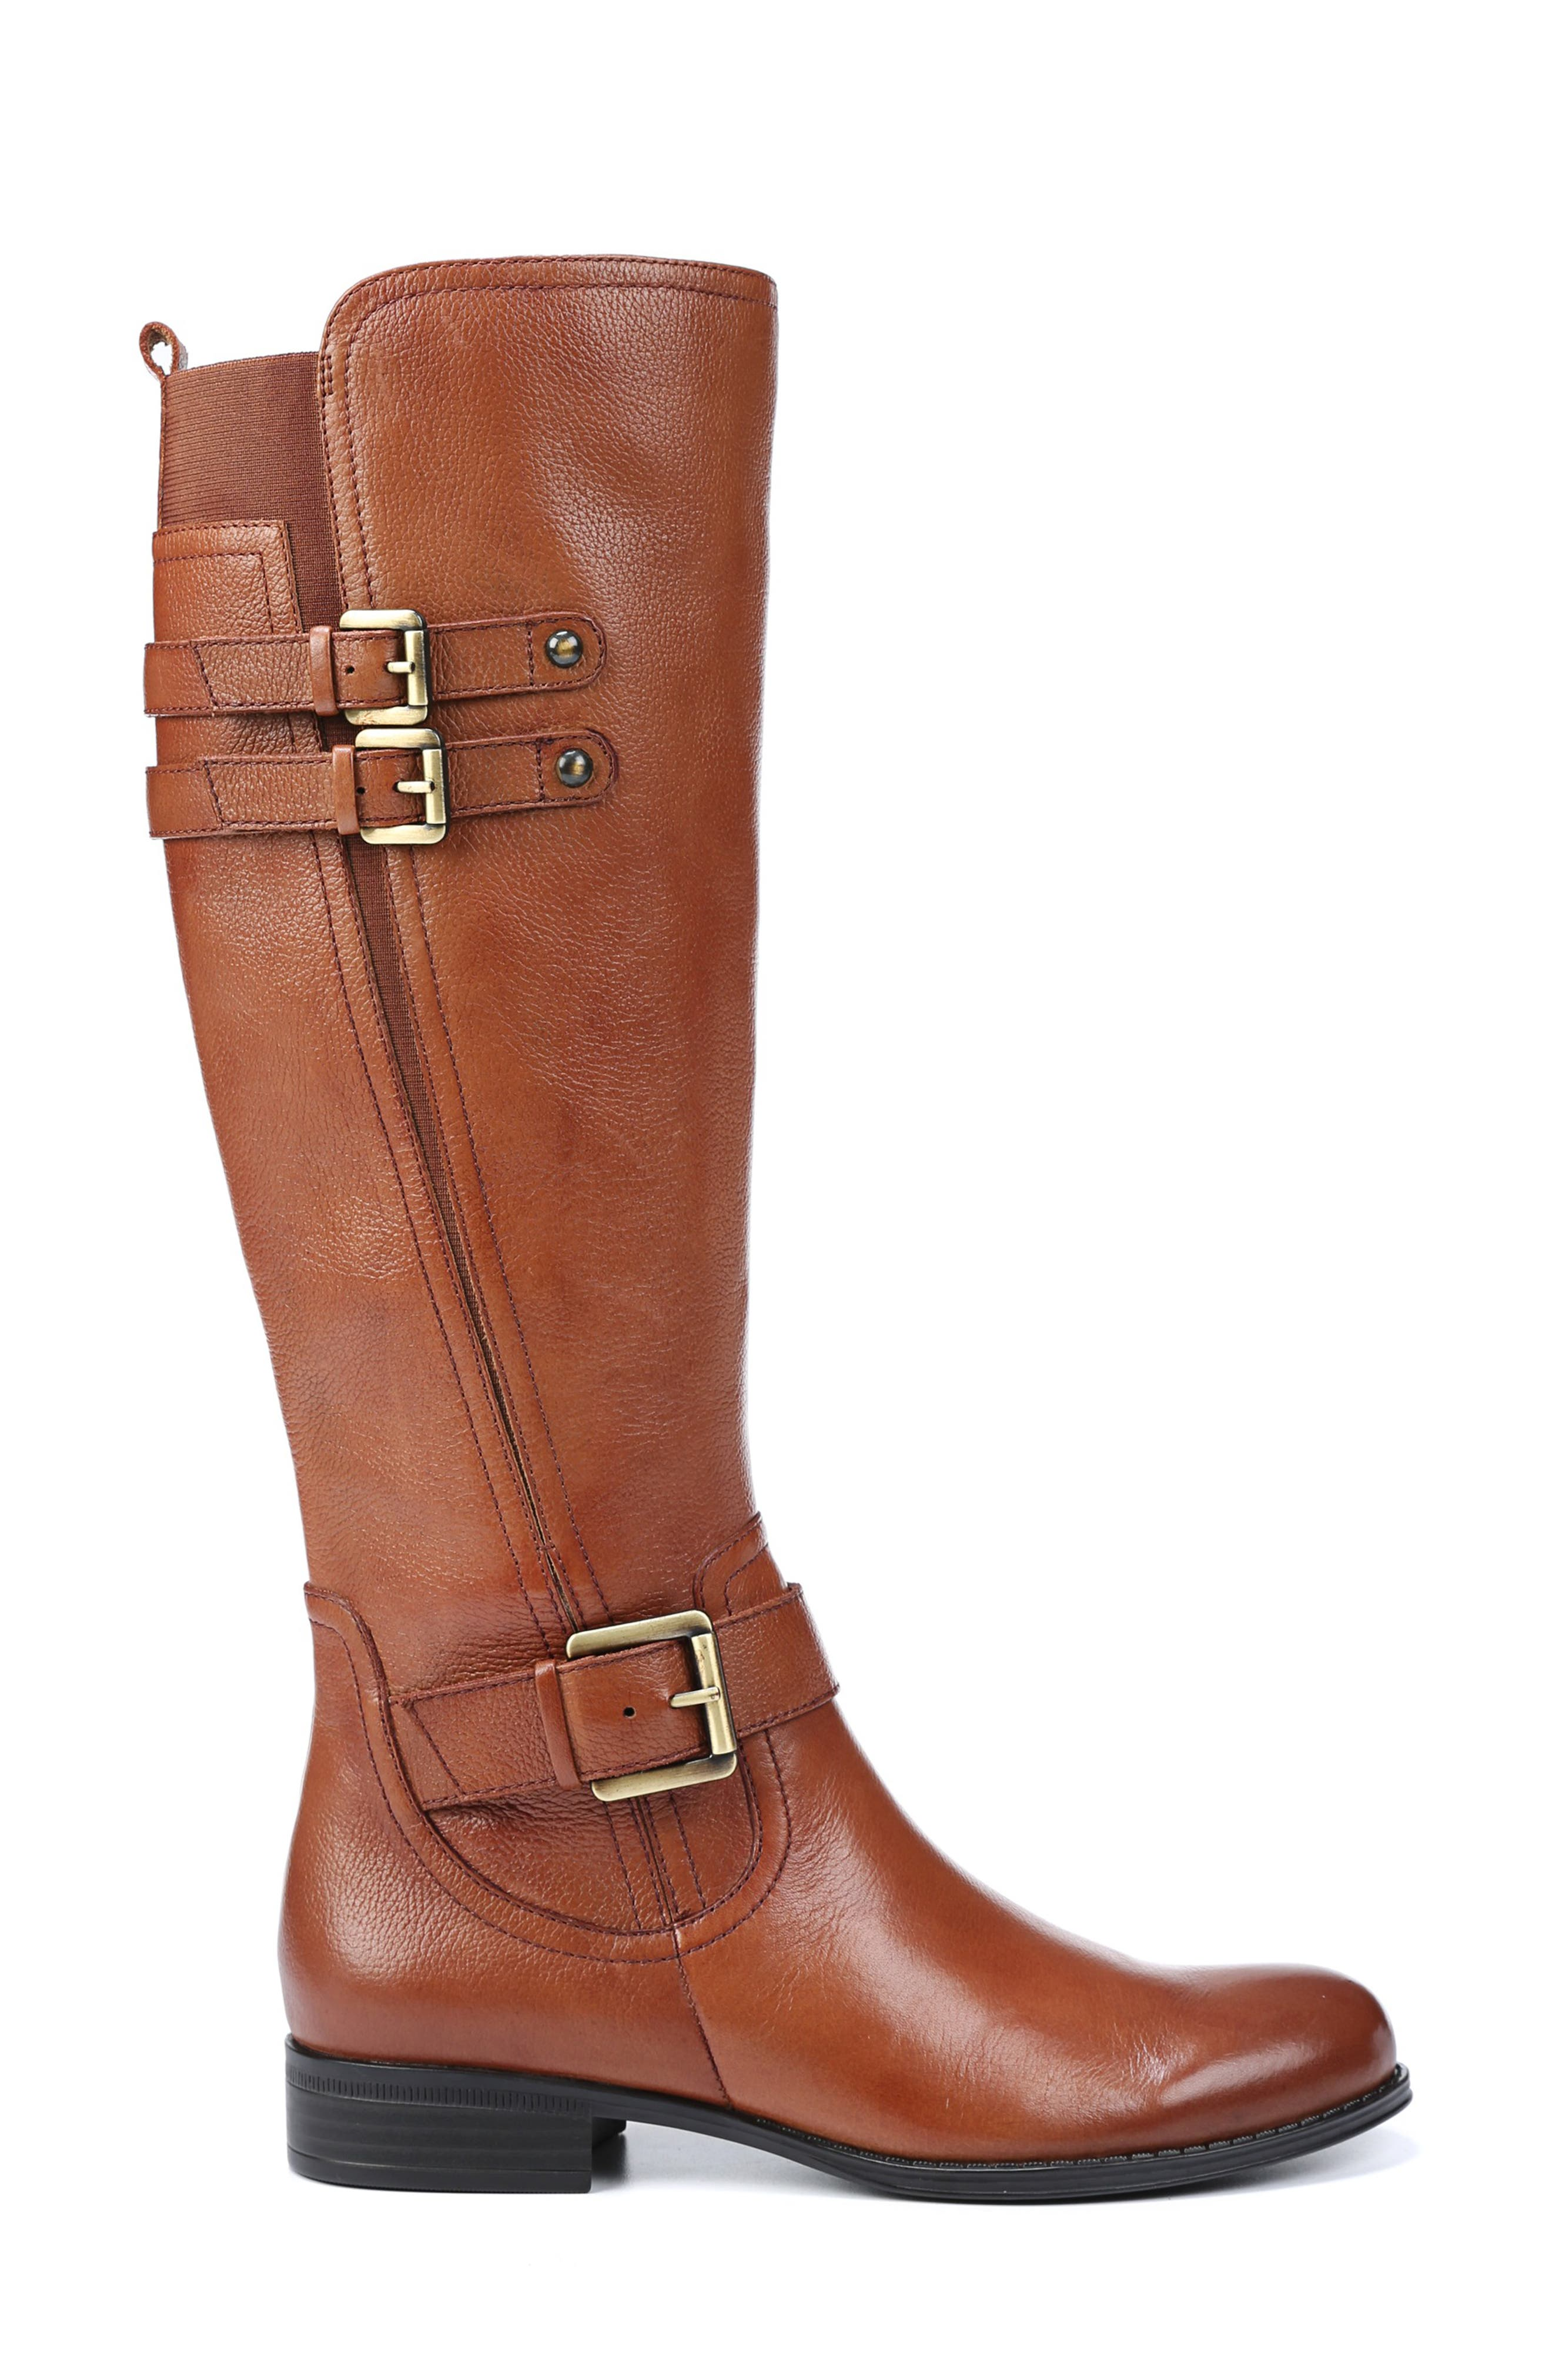 NATURALIZER, Jessie Knee High Riding Boot, Alternate thumbnail 3, color, BANANA BREAD LEATHER